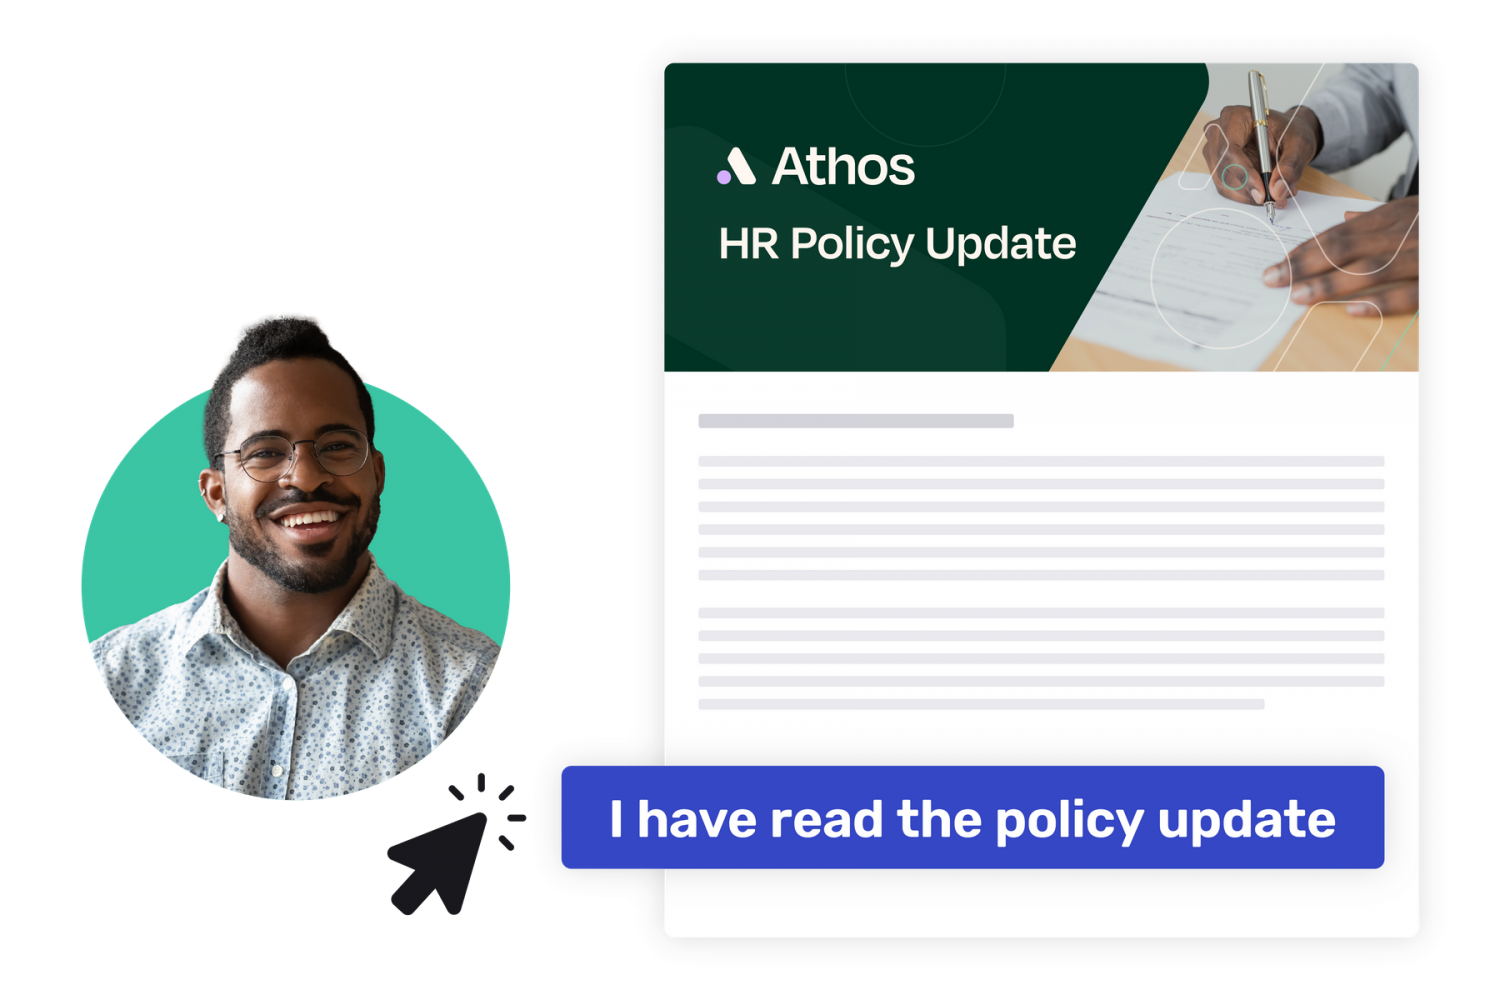 employee acknowledging that they've read the new HR policy update